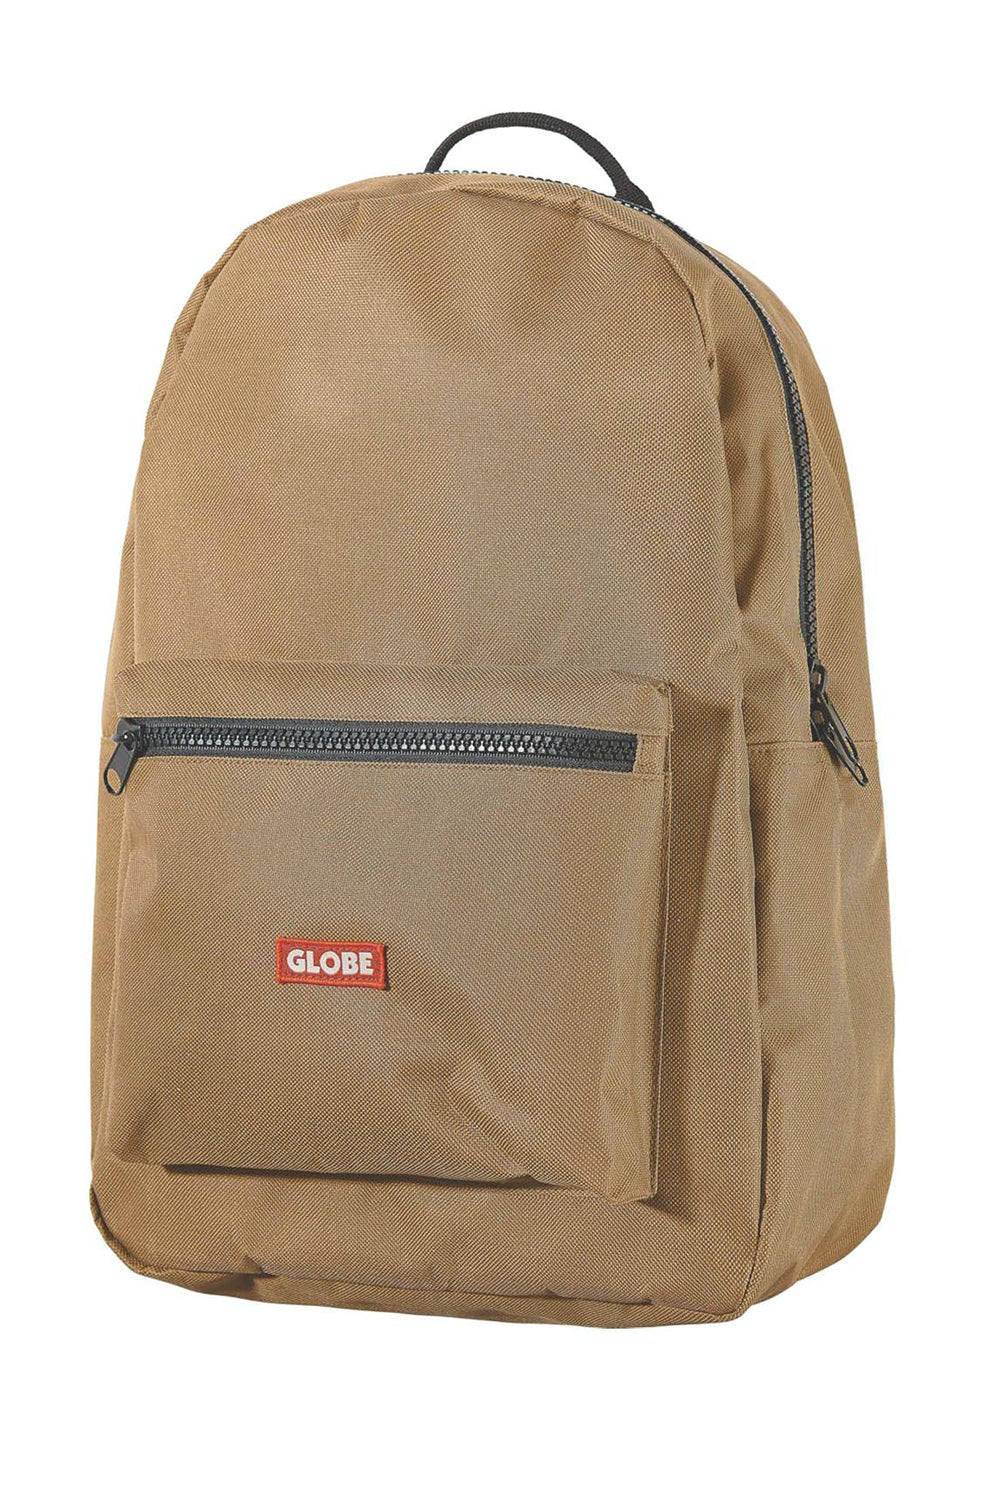 Globe Deluxe Backpack - Desert